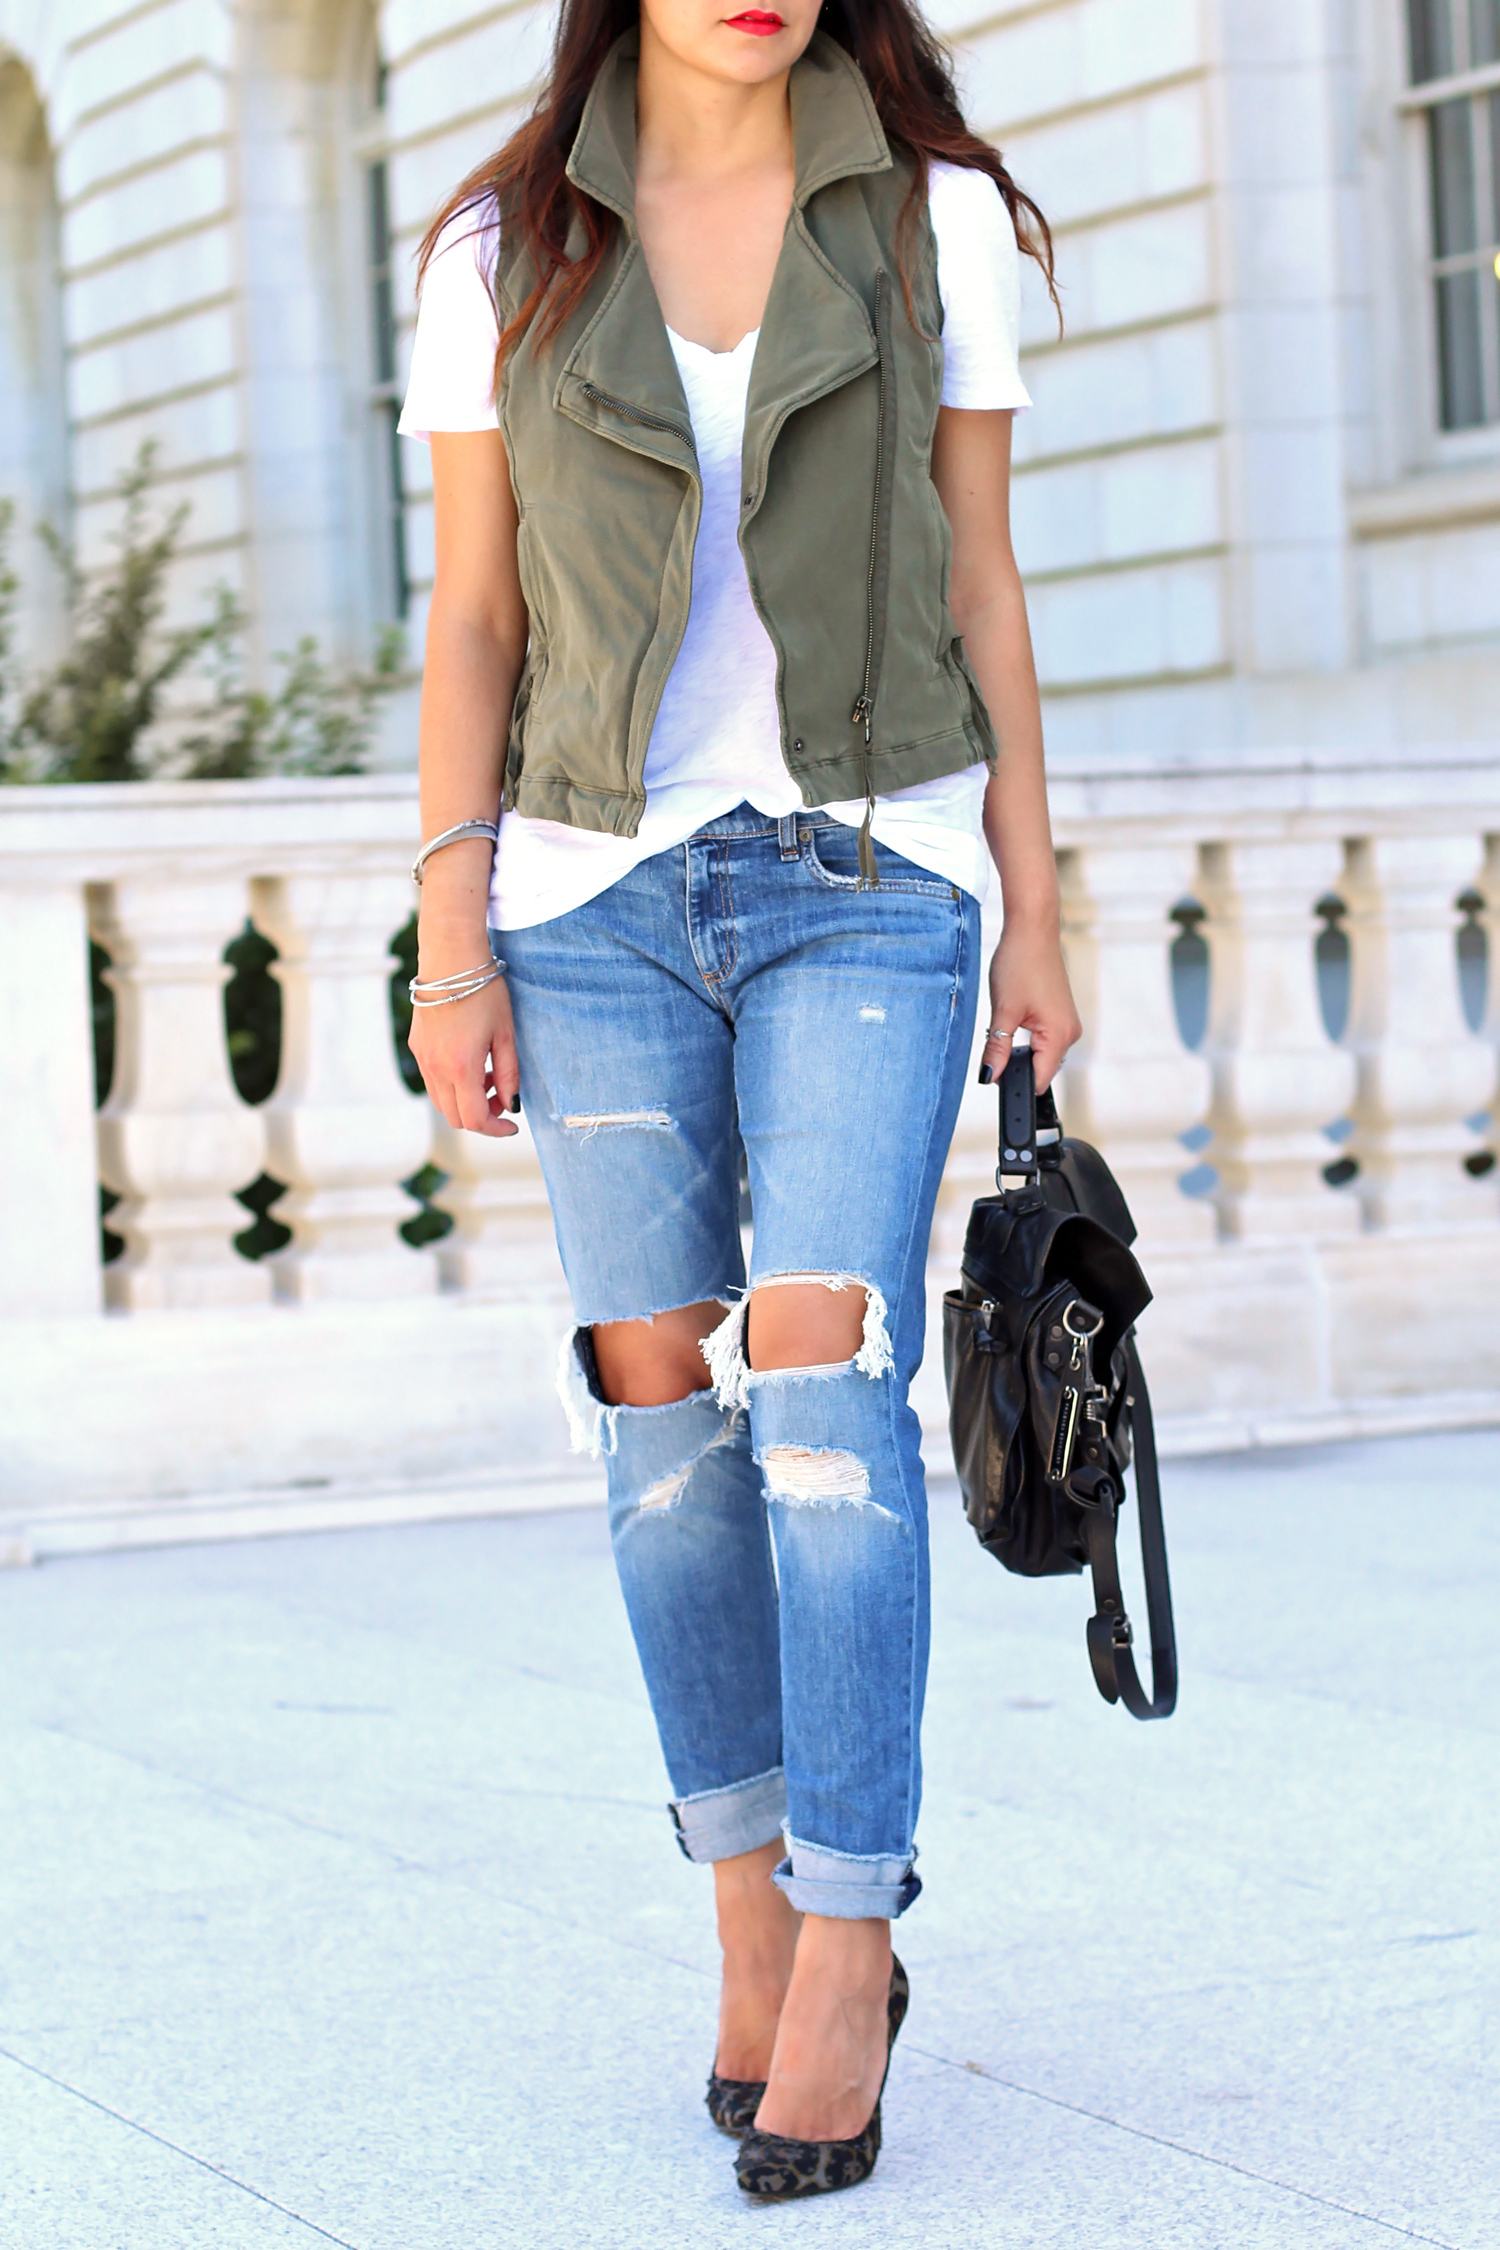 Anthropologie Moto Vest, Rag and Bone Dre Boyfriend Jeans